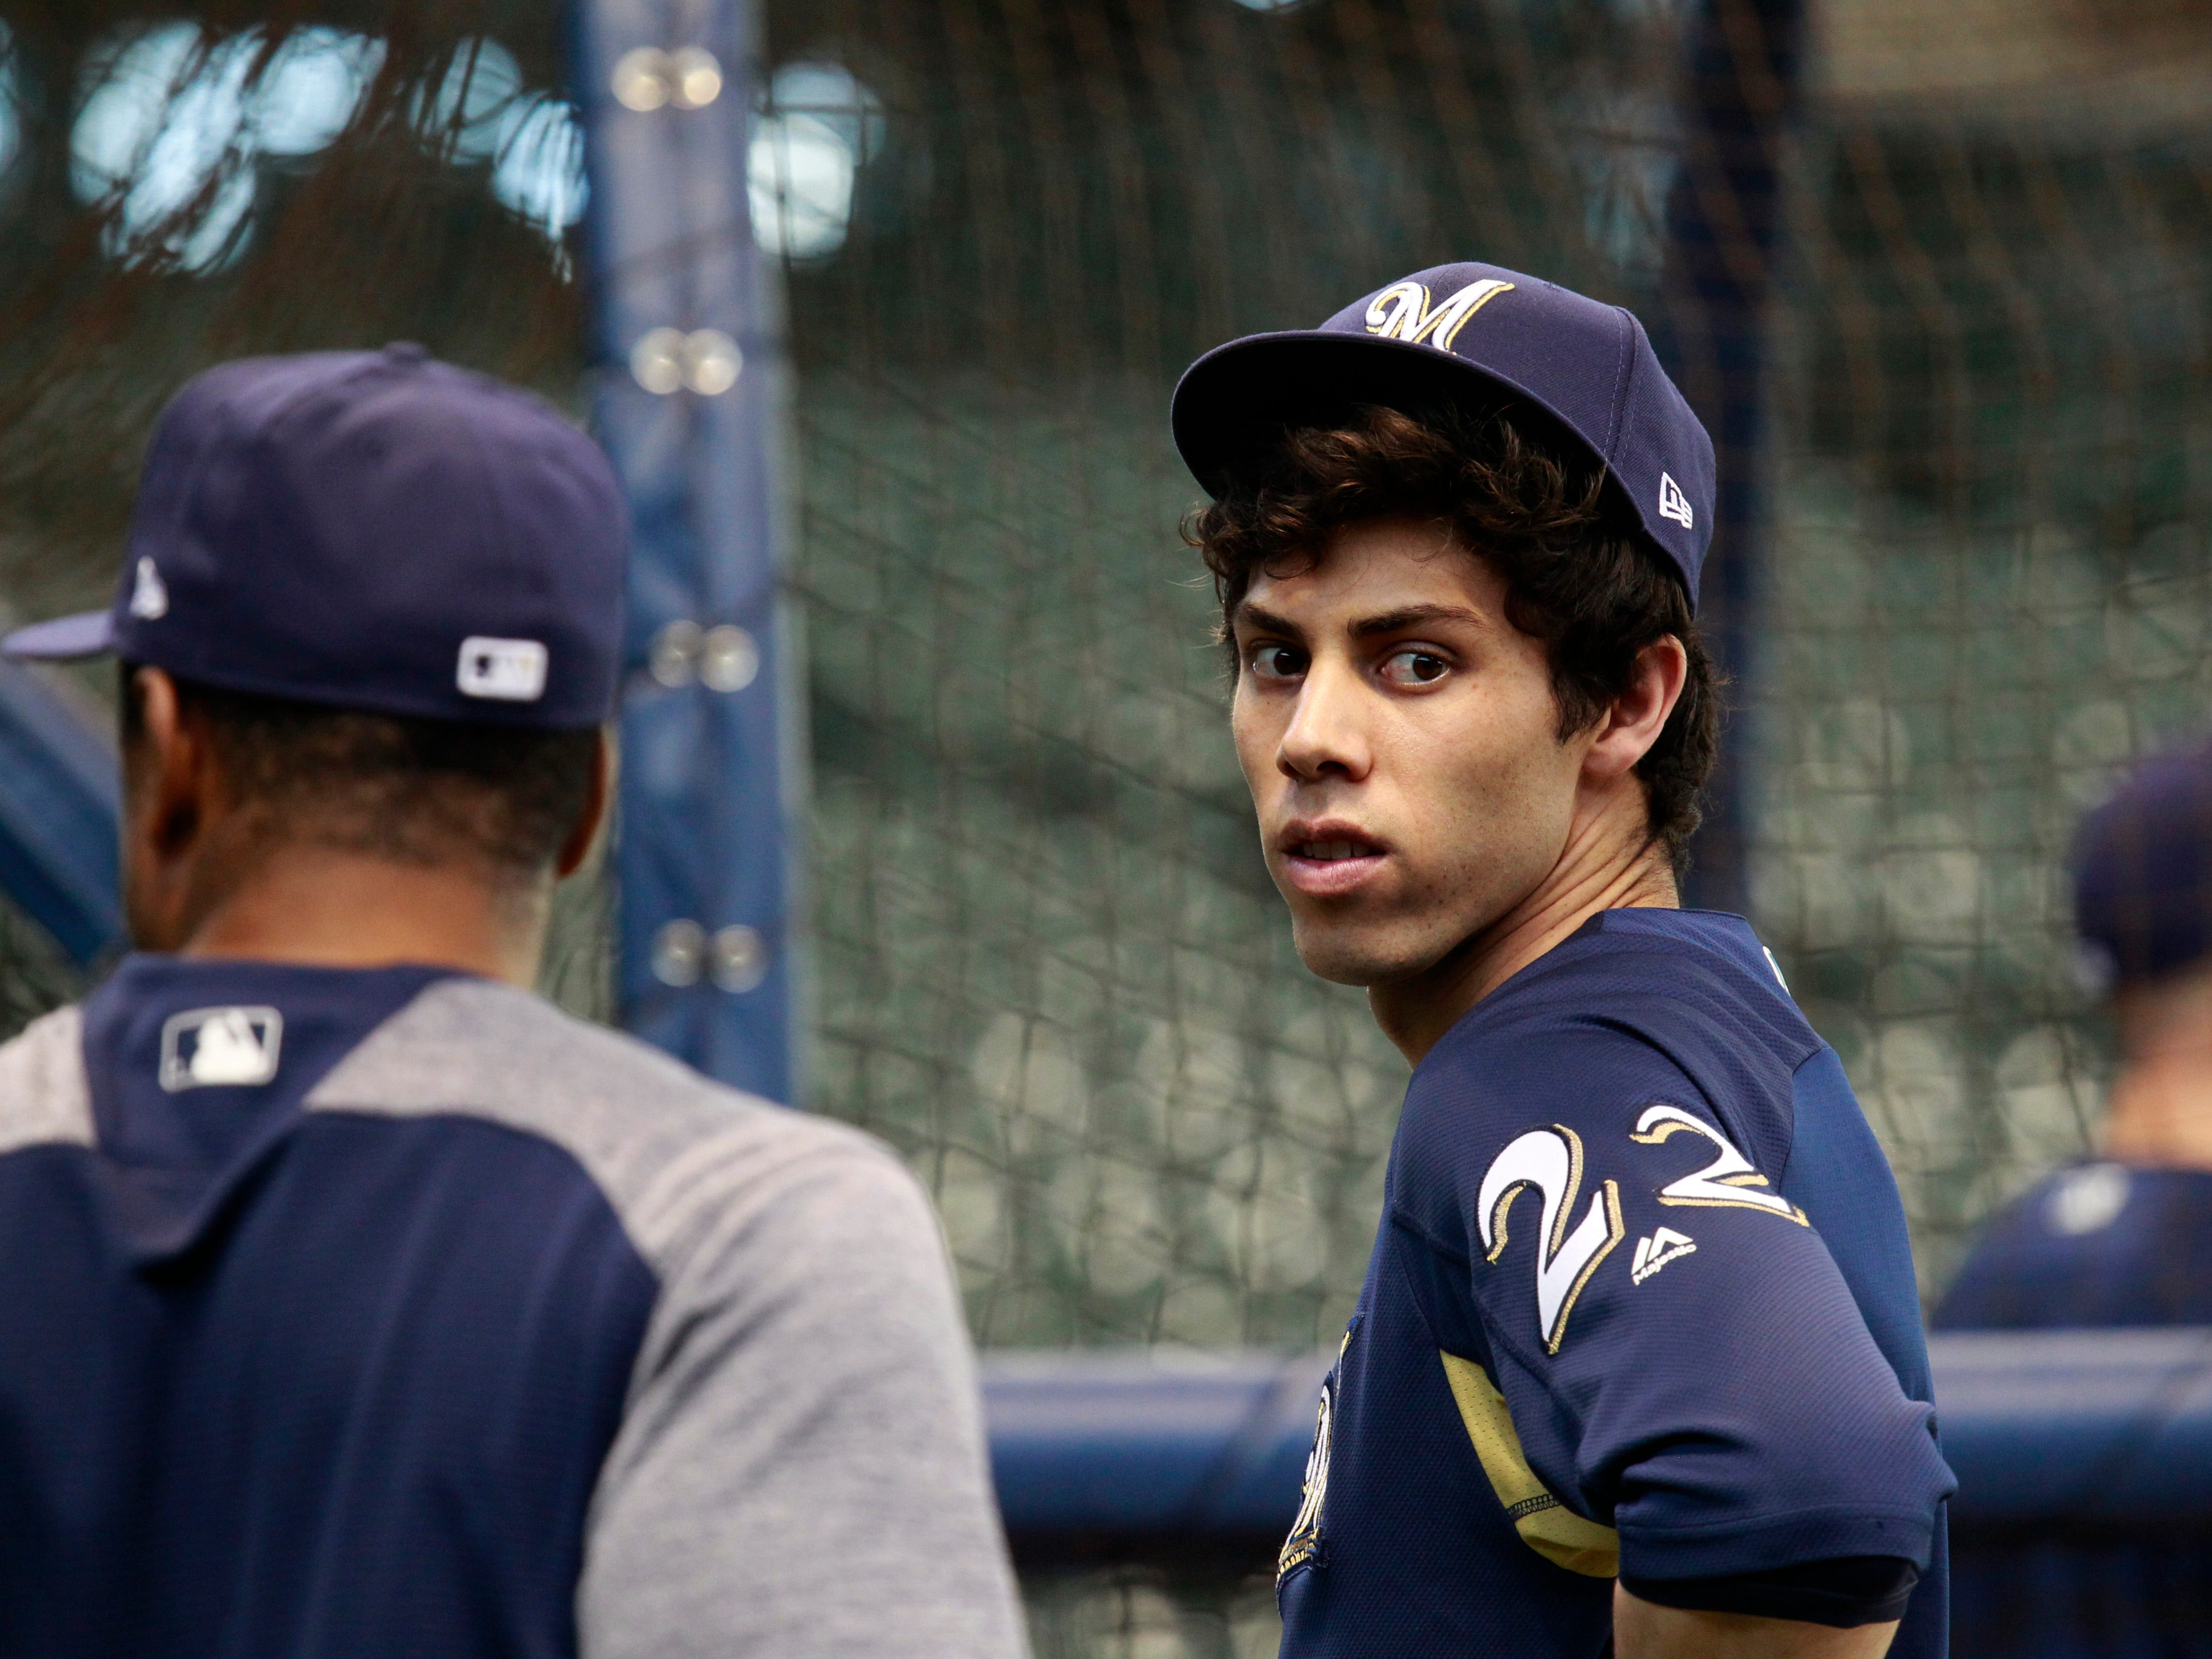 Brewers  outfielder Christian Yelich waits his turn to hit the batting cage during practice Wednesday at Miller Park.